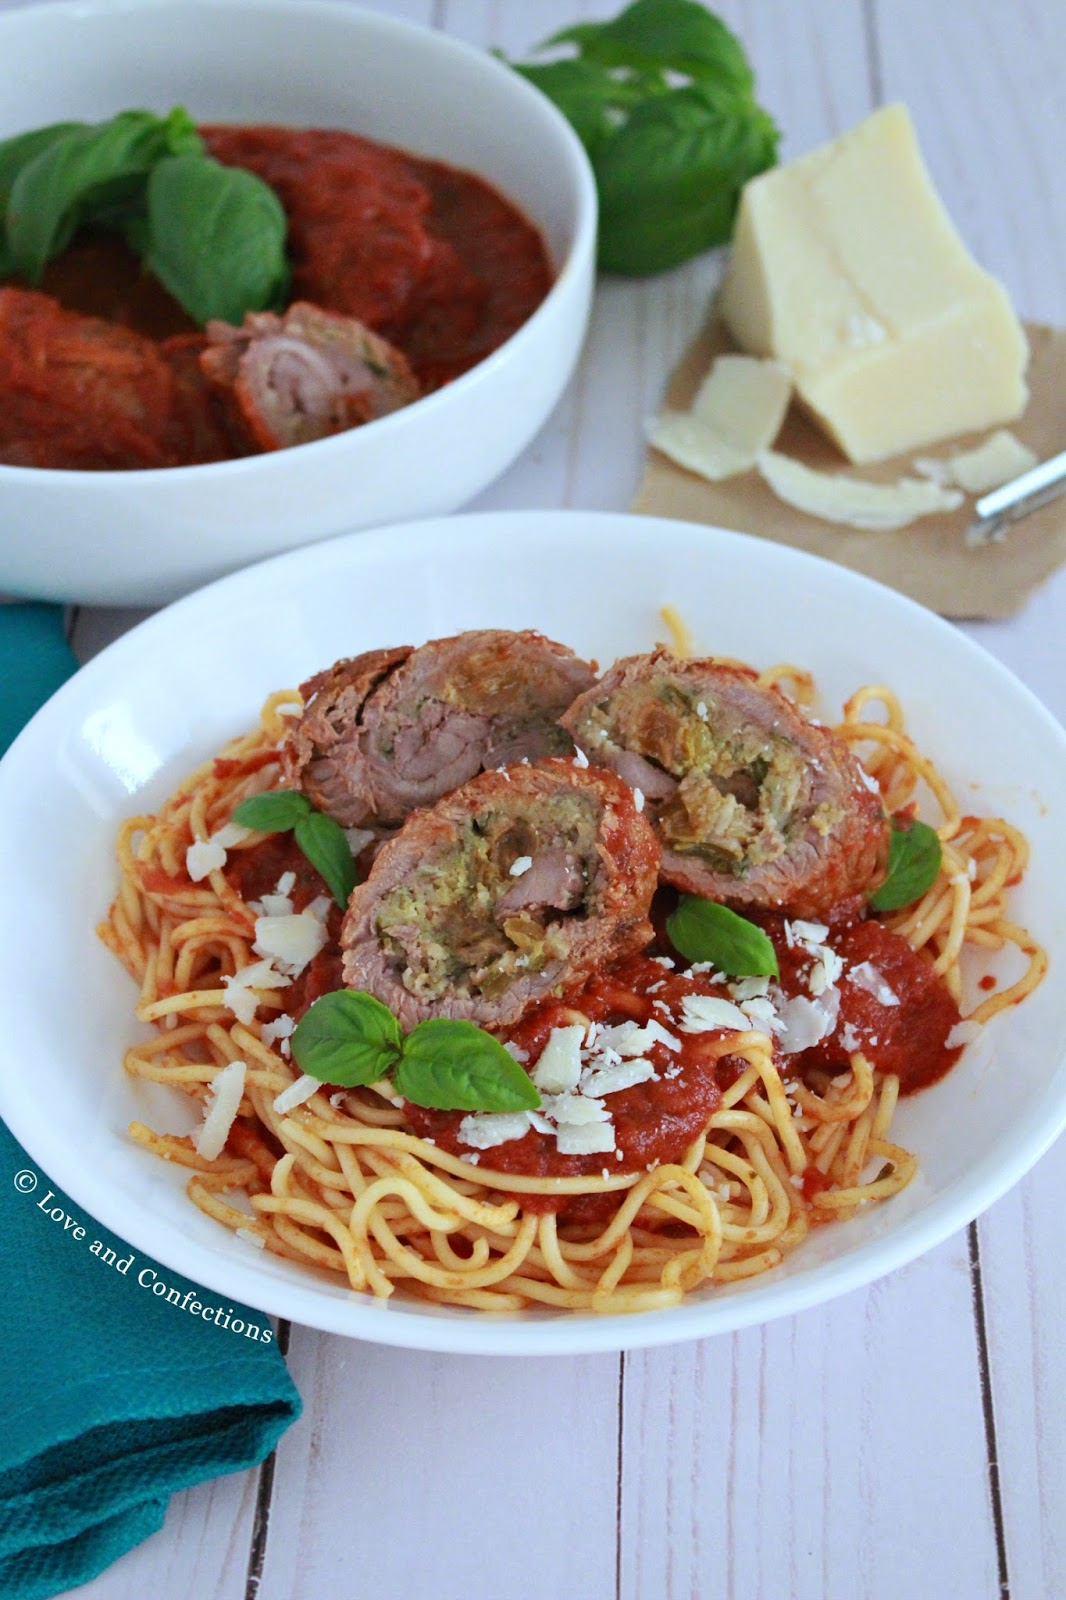 Italian Beef Braciole From LoveandConfections